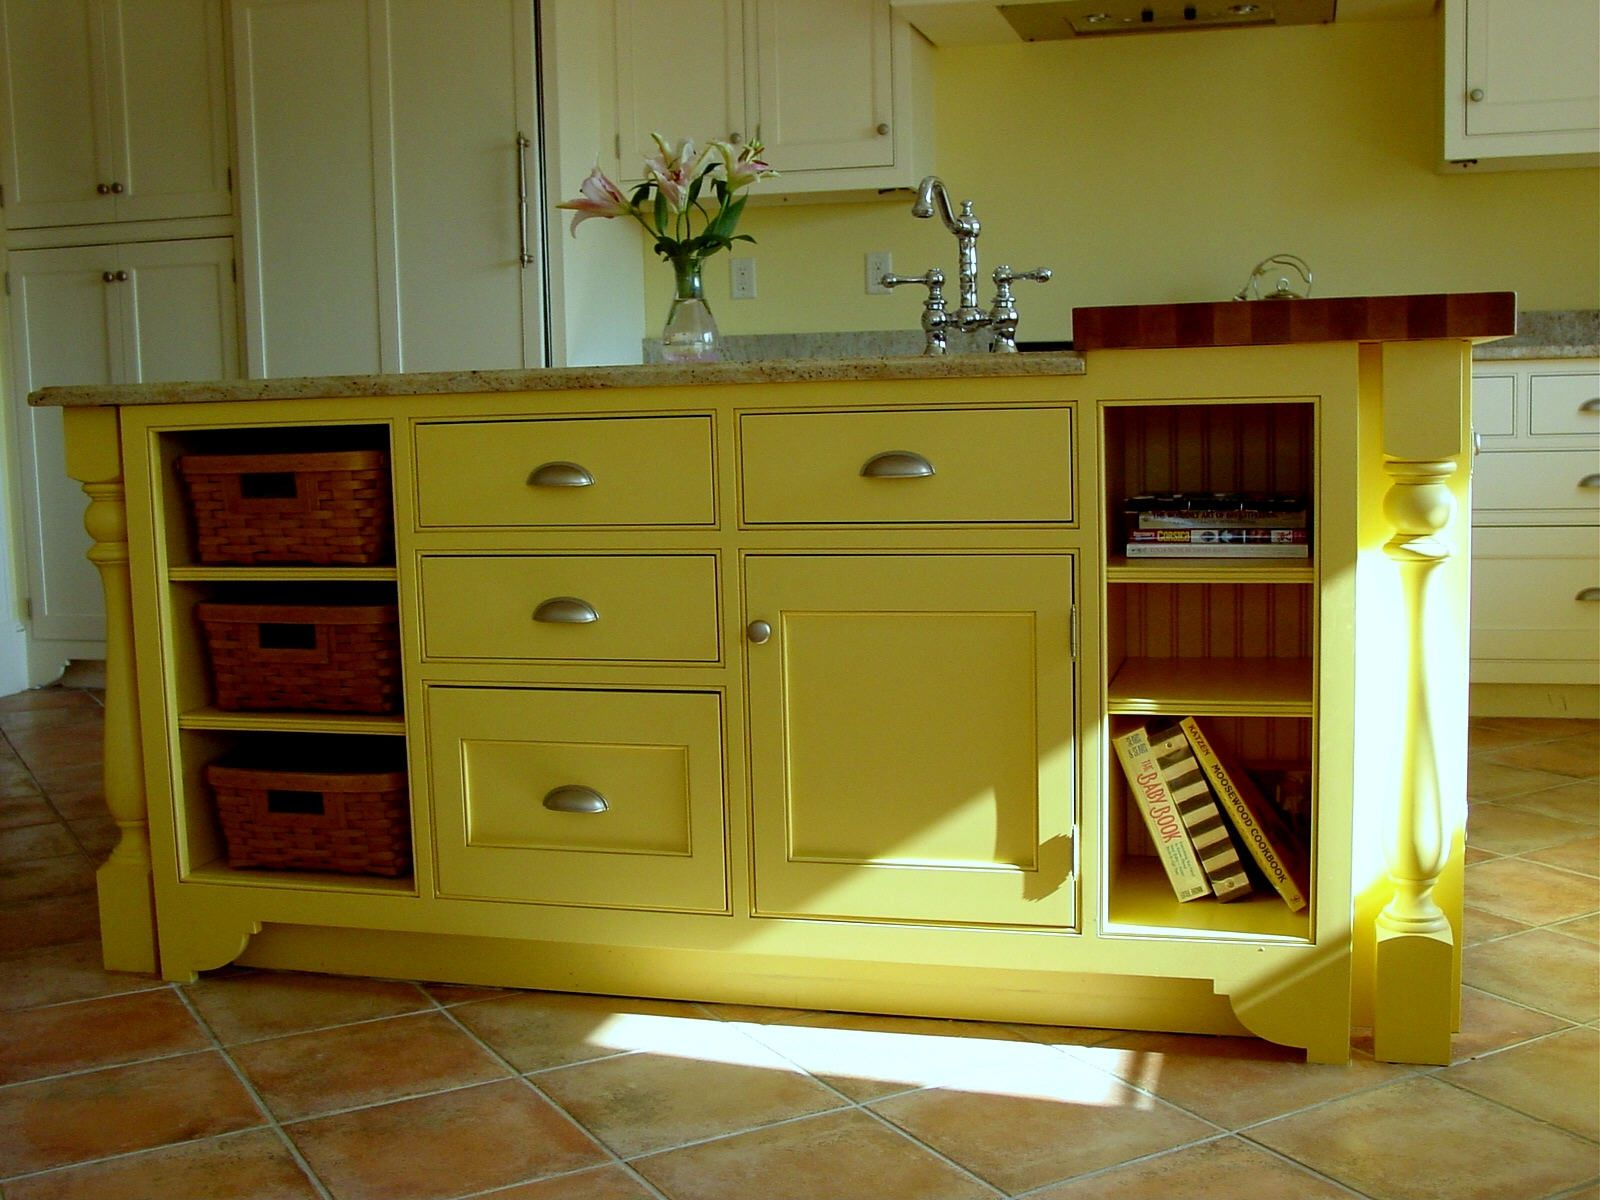 Upcycle an old dresser or similar find and turn it into a kitchen